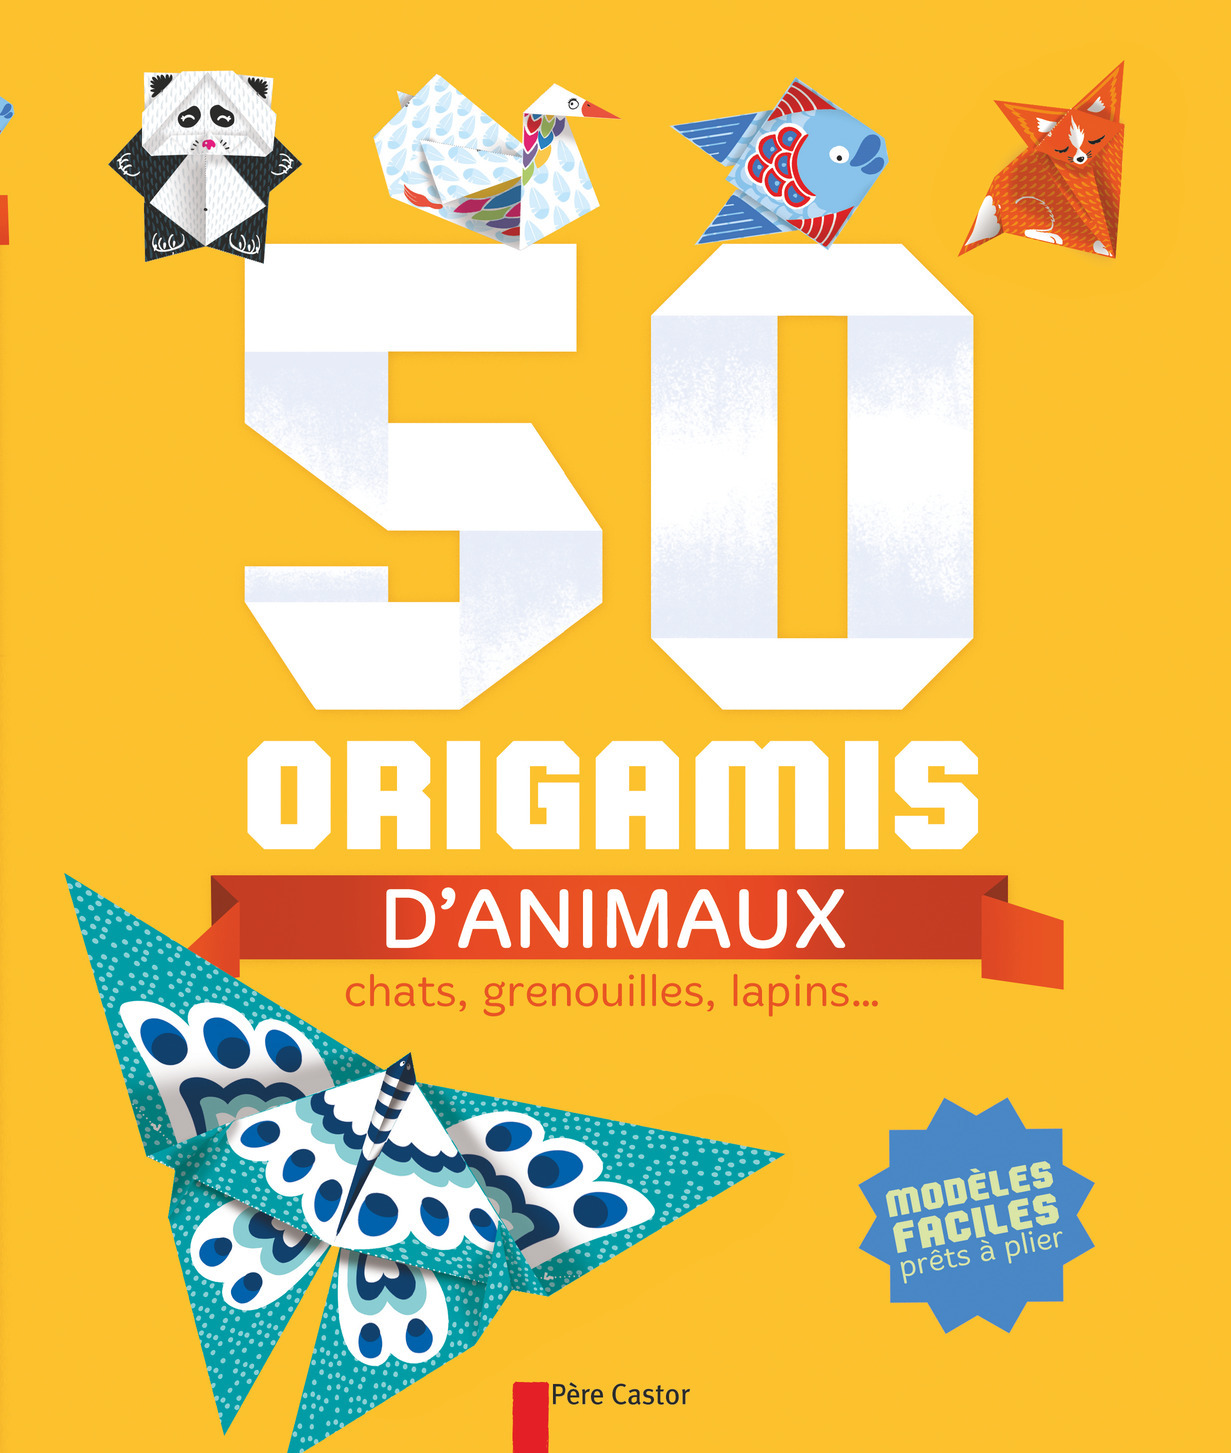 50 ORIGAMIS D'ANIMAUX - CHATS, GRENOUILLES, LAPINS...